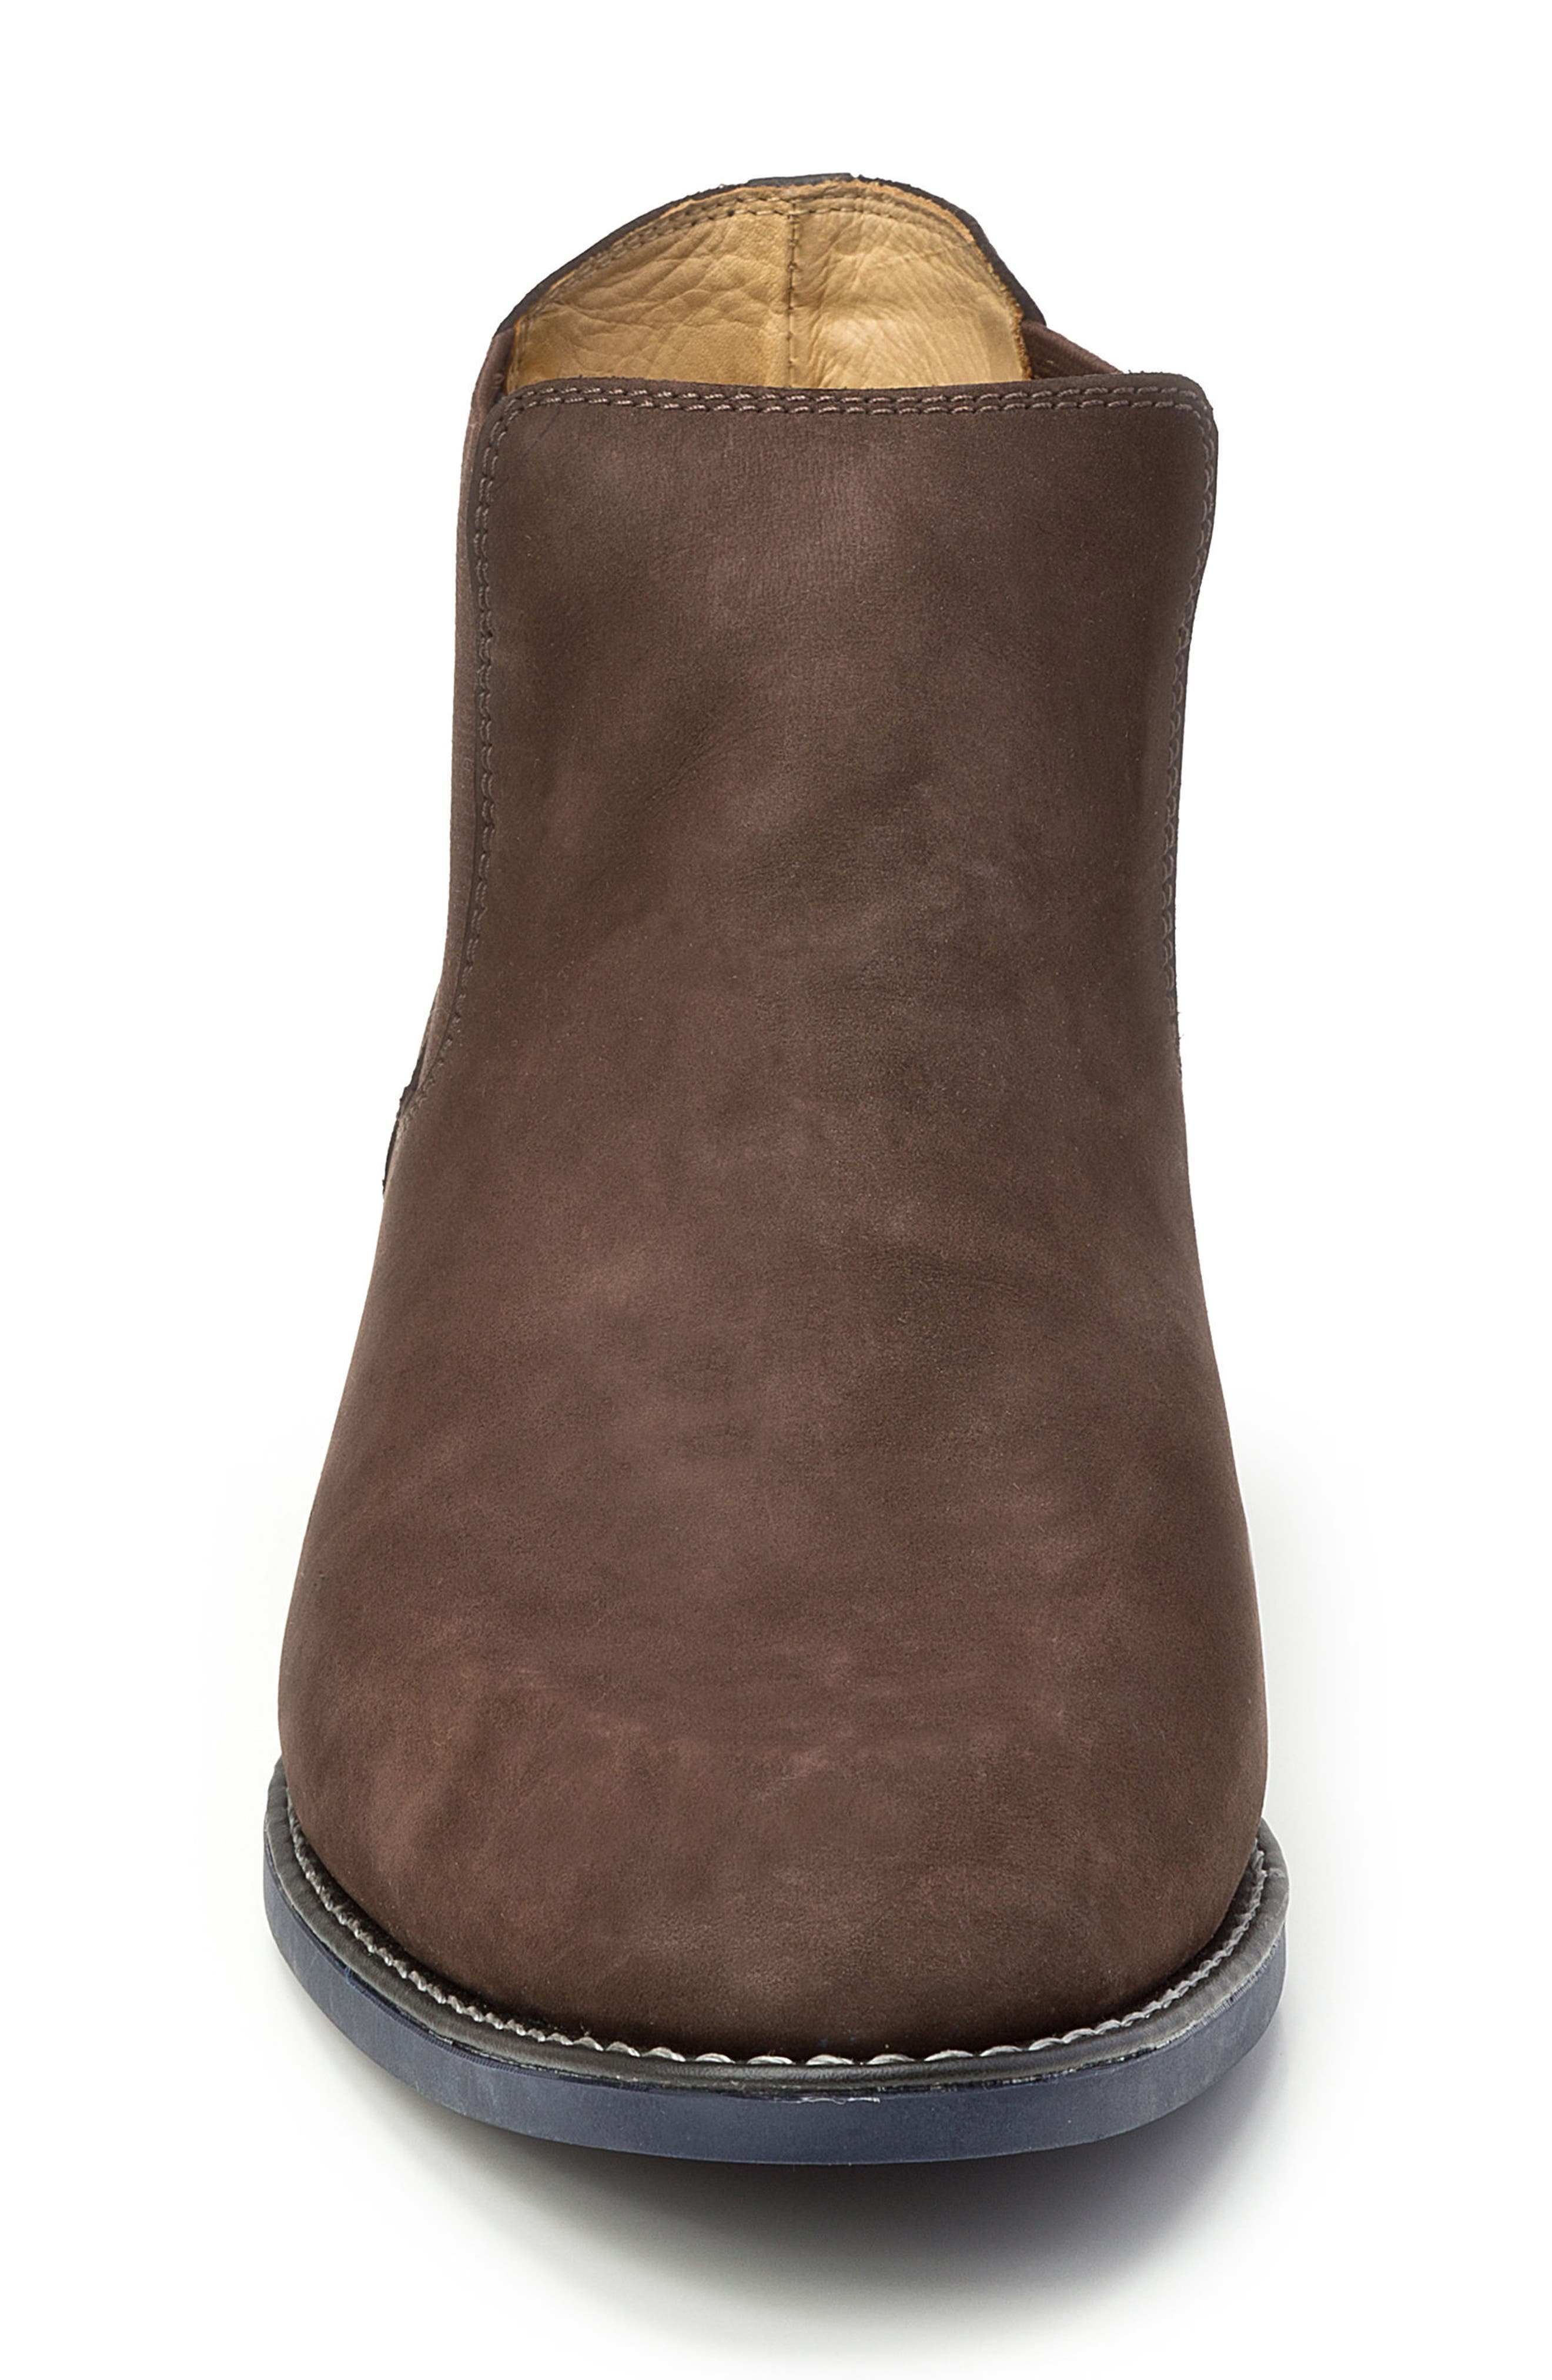 Marcus Chelsea Boot,                             Alternate thumbnail 4, color,                             Brown Nubuck Leather